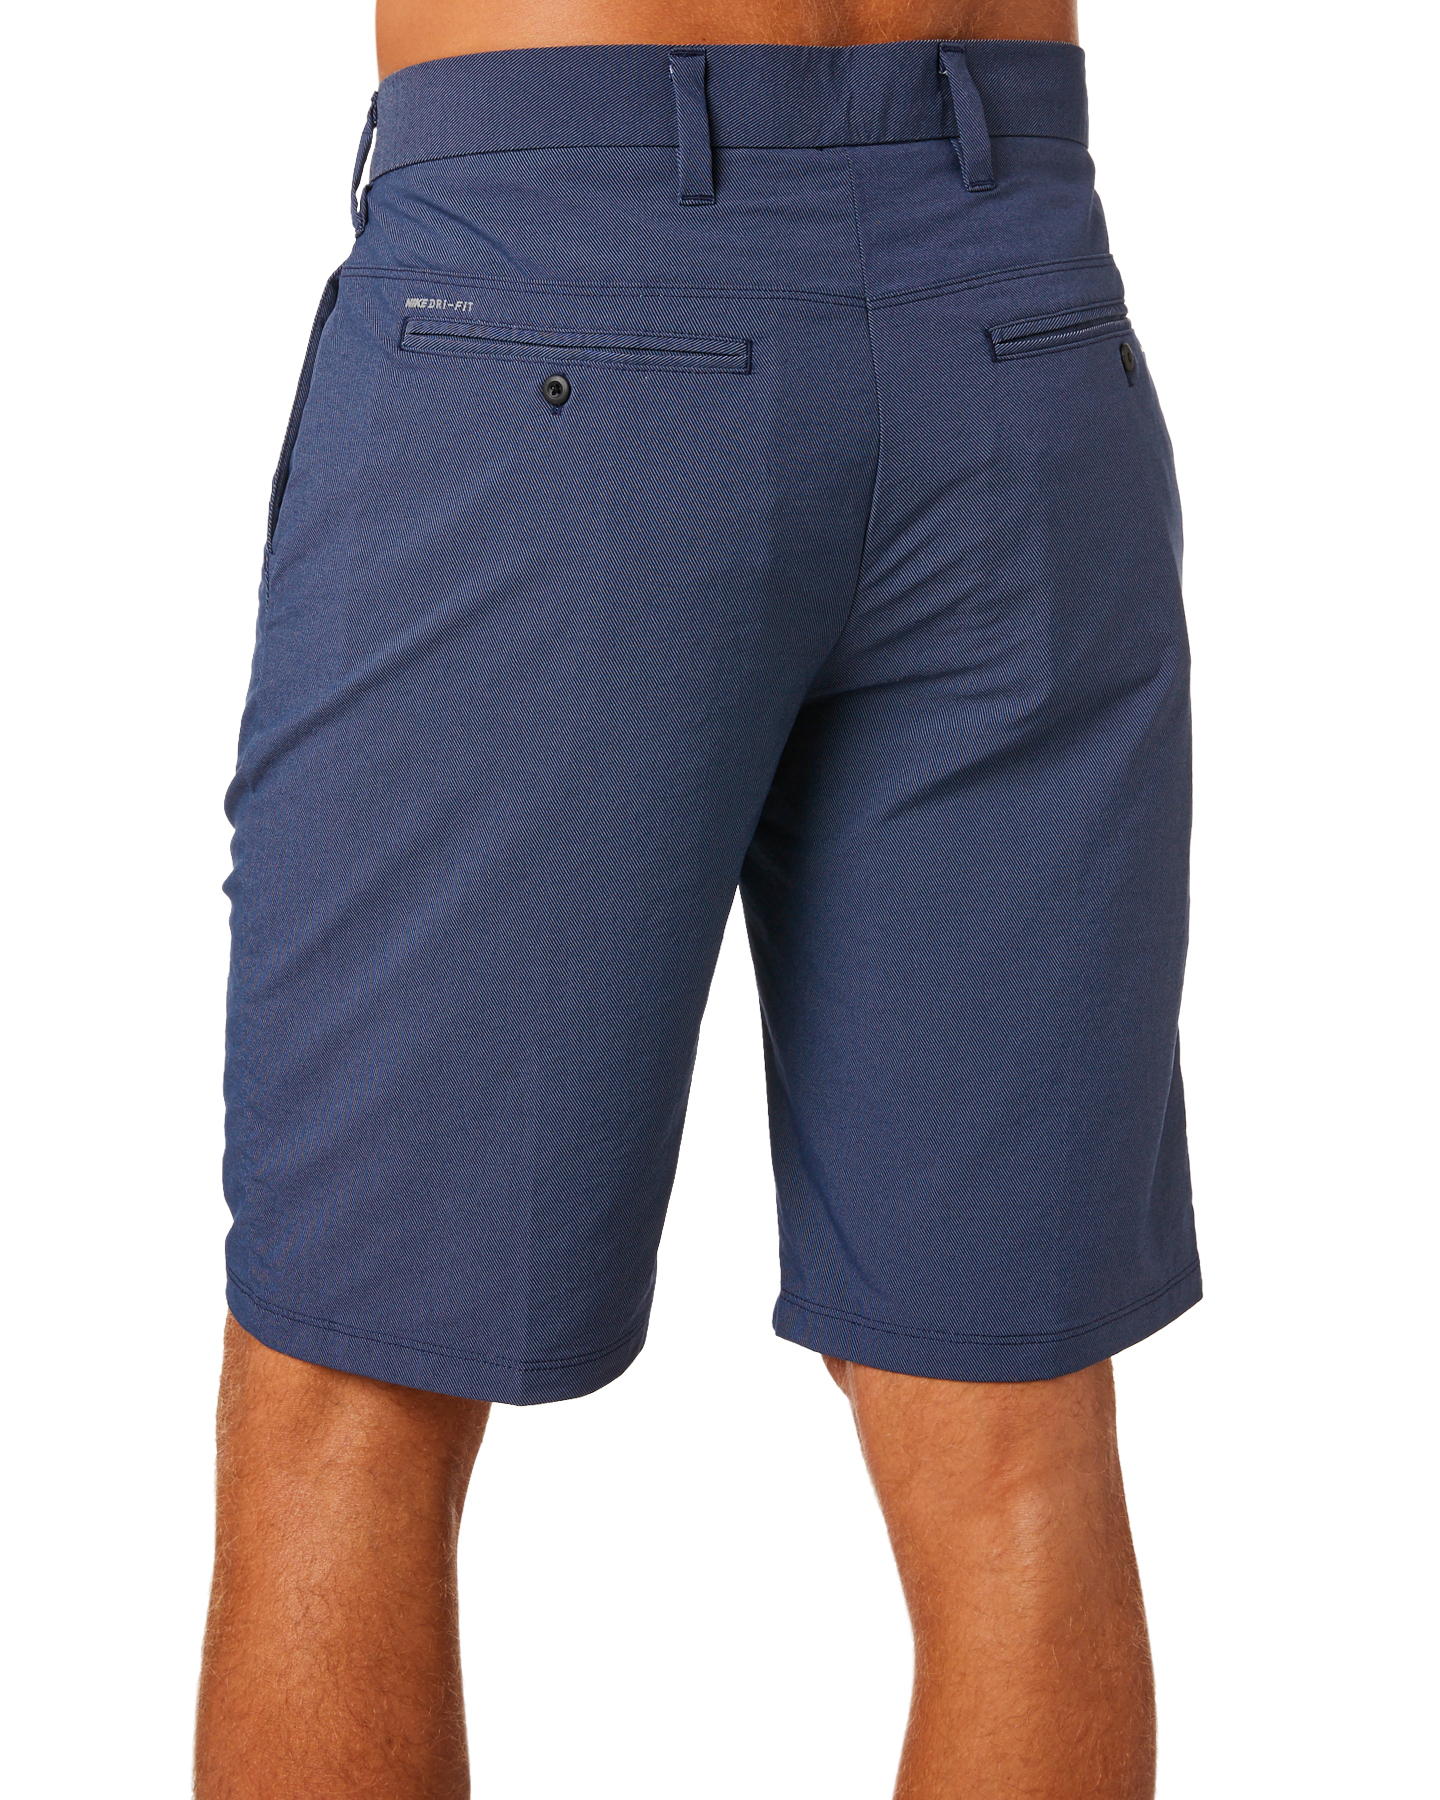 New-Hurley-Men-039-s-Dri-Fit-Chino-Short-21In-Mens-Short-Fitted-Spandex-Grey thumbnail 18